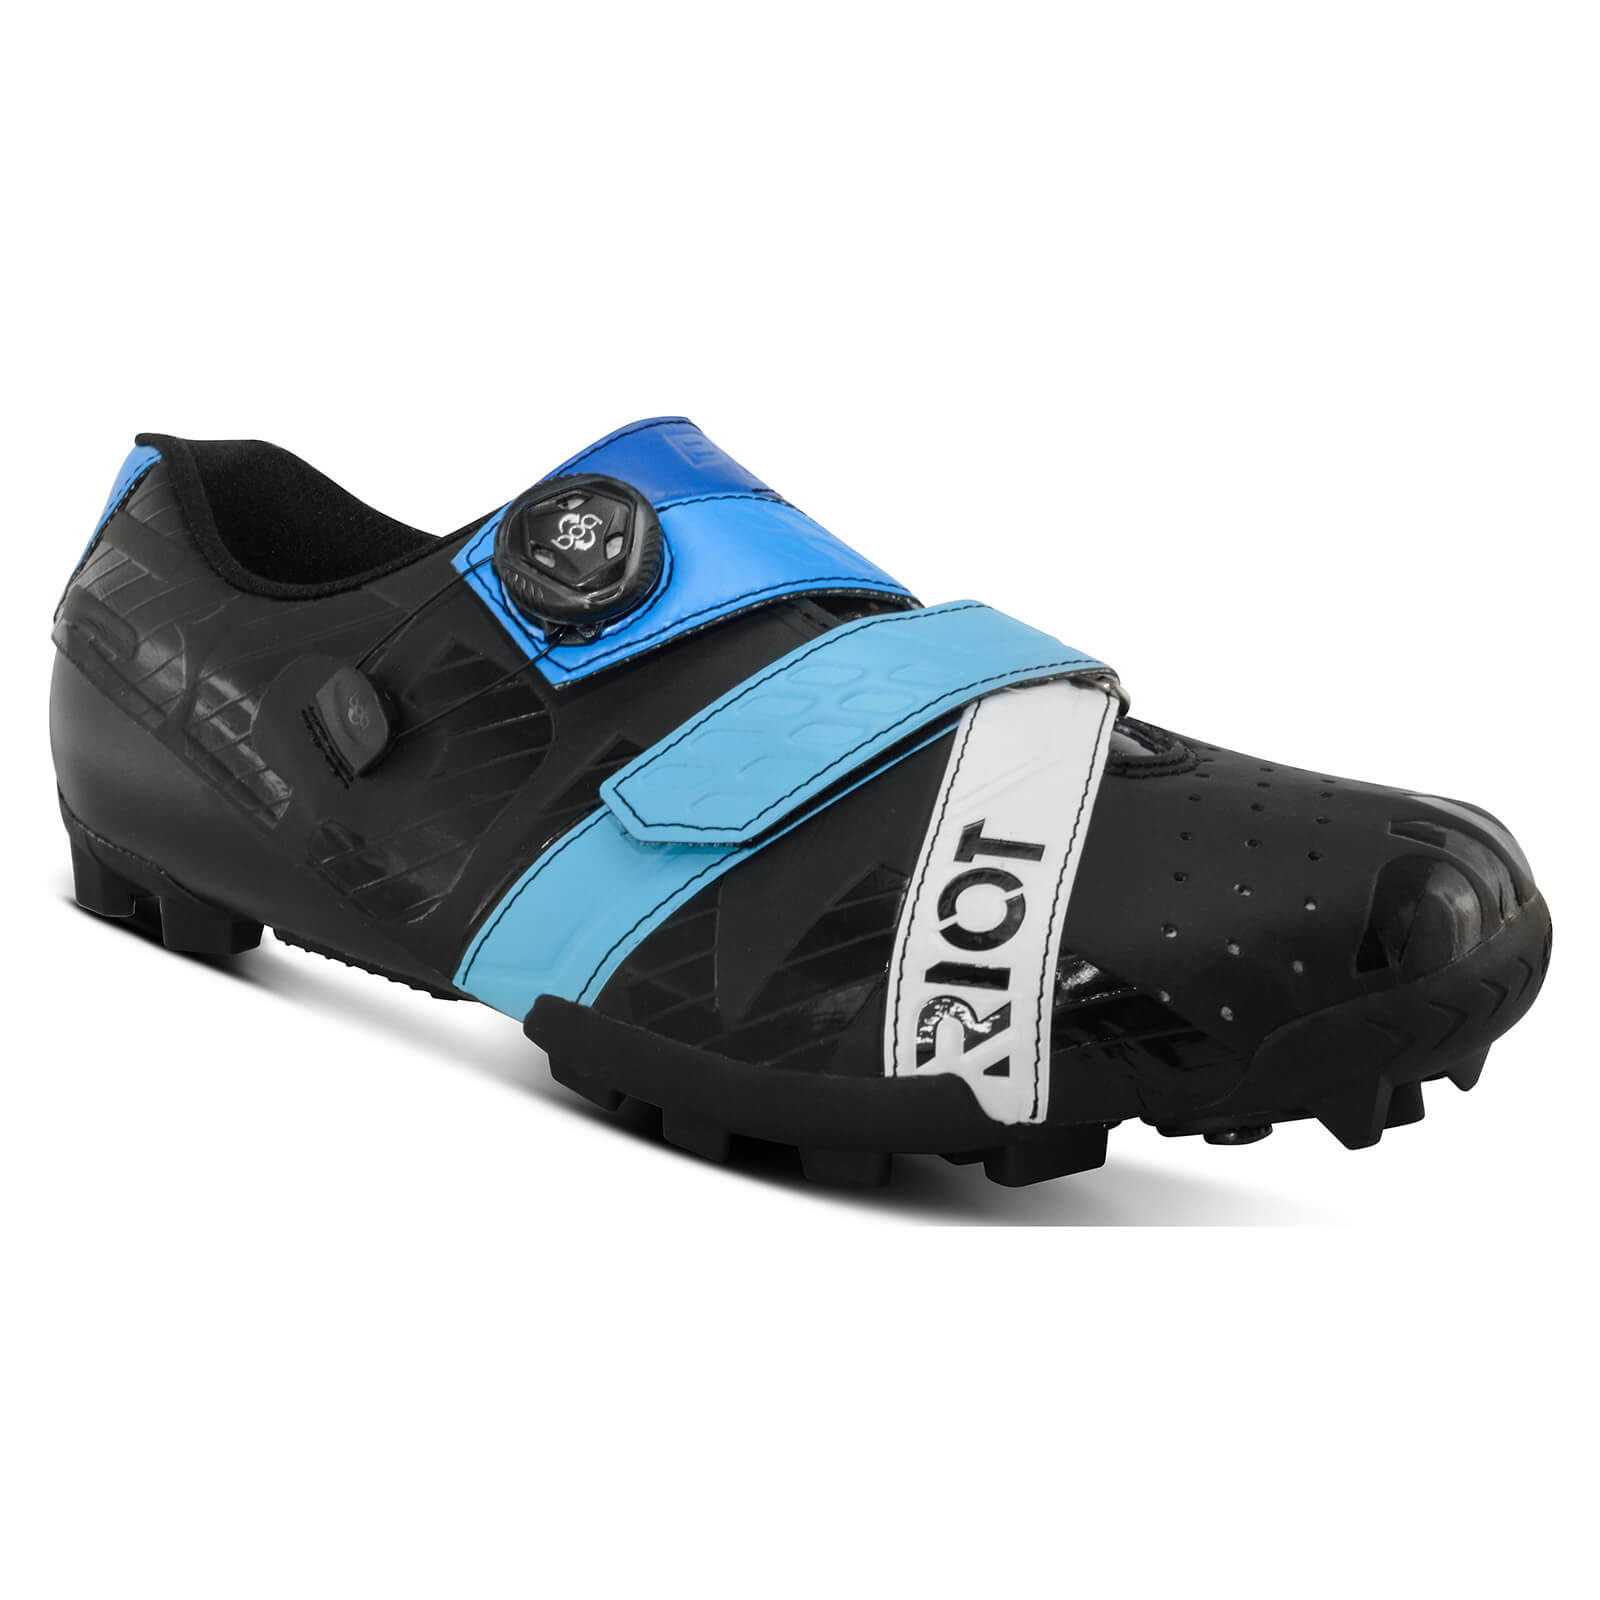 Bont Riot+ MTB Shoes - EU 42.5 - Black/Blue